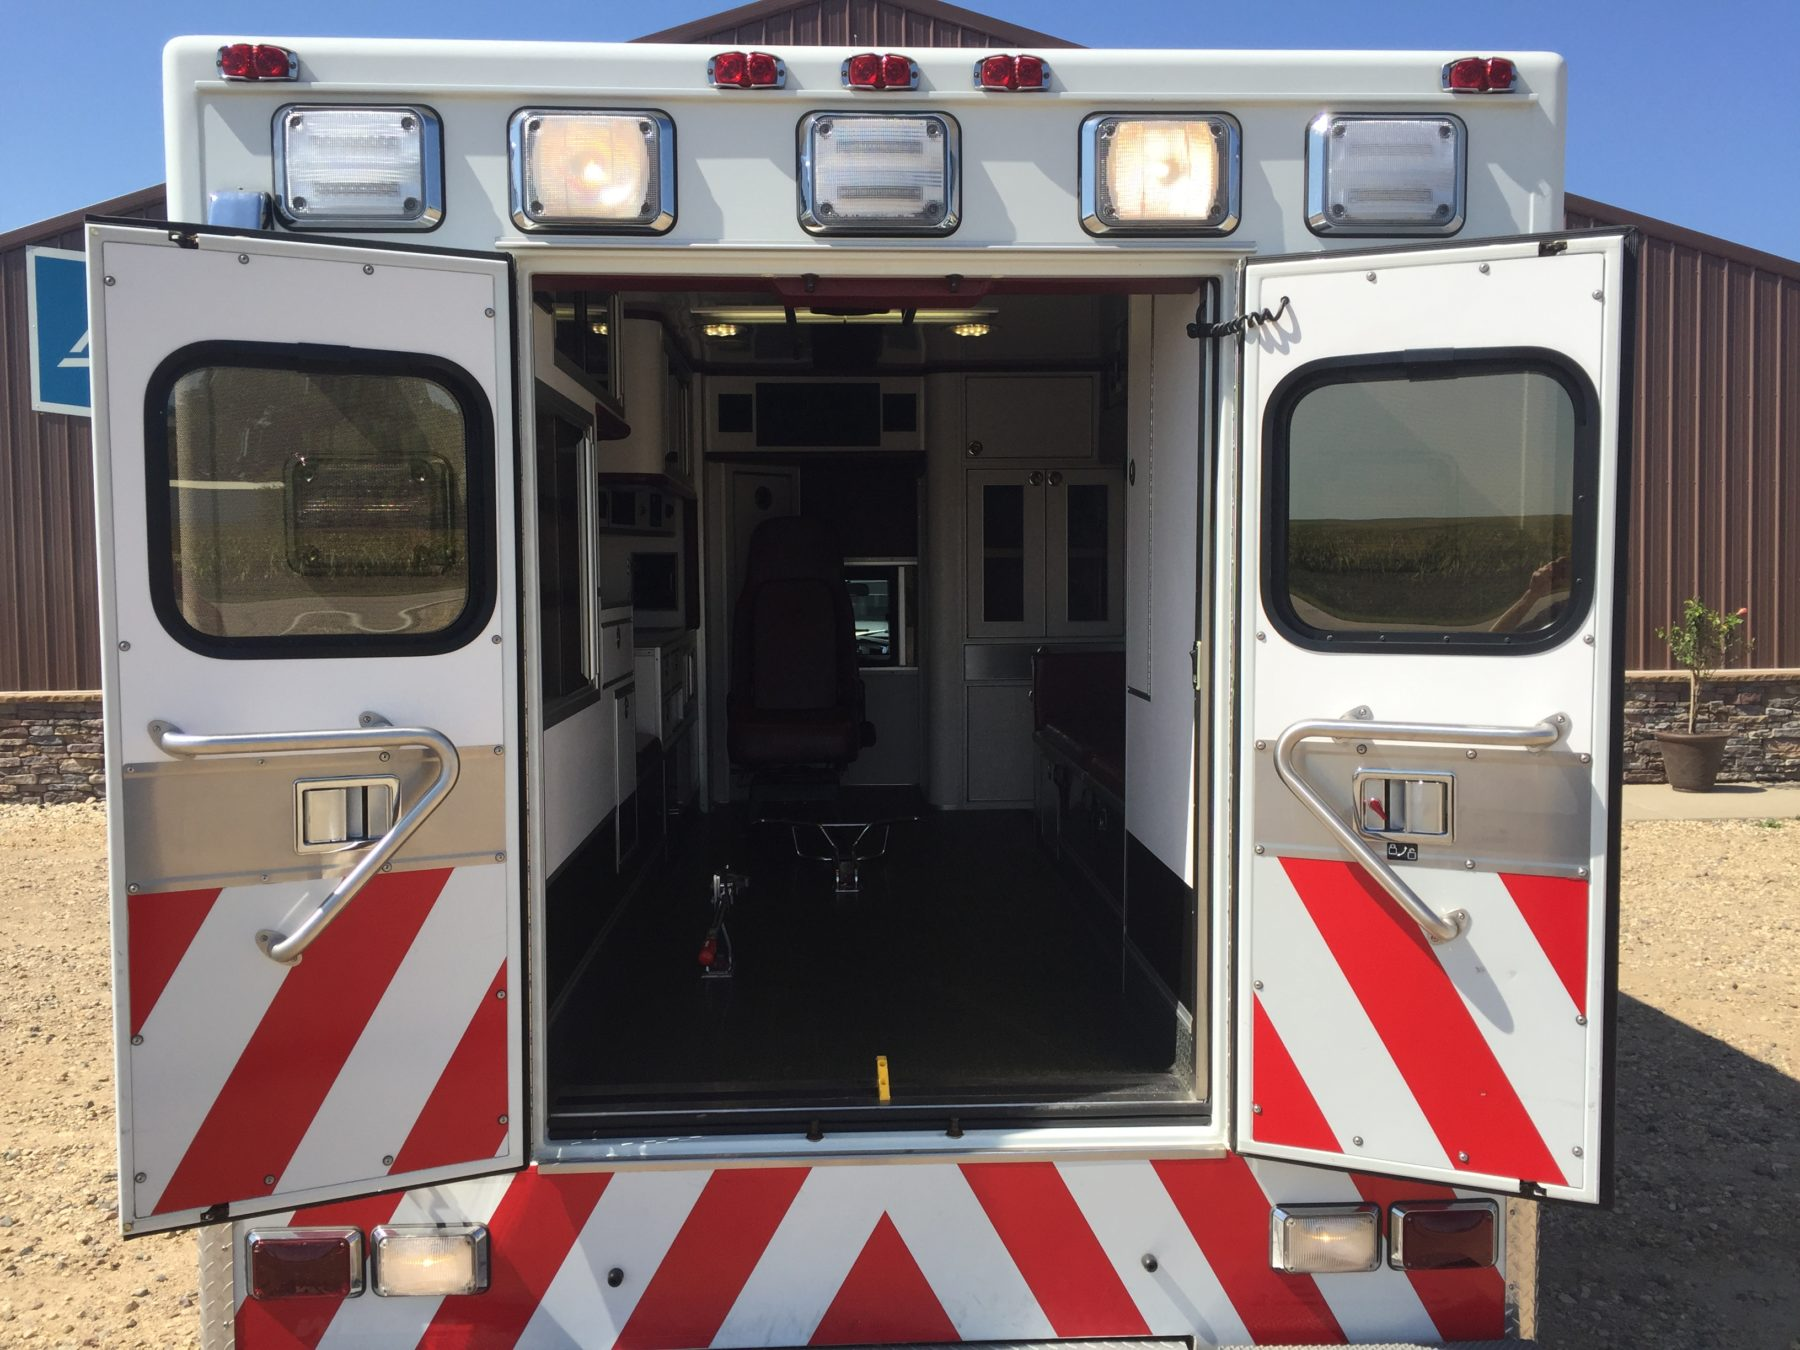 2009 Dodge 4500 Heavy Duty Ambulance For Sale – Picture 10